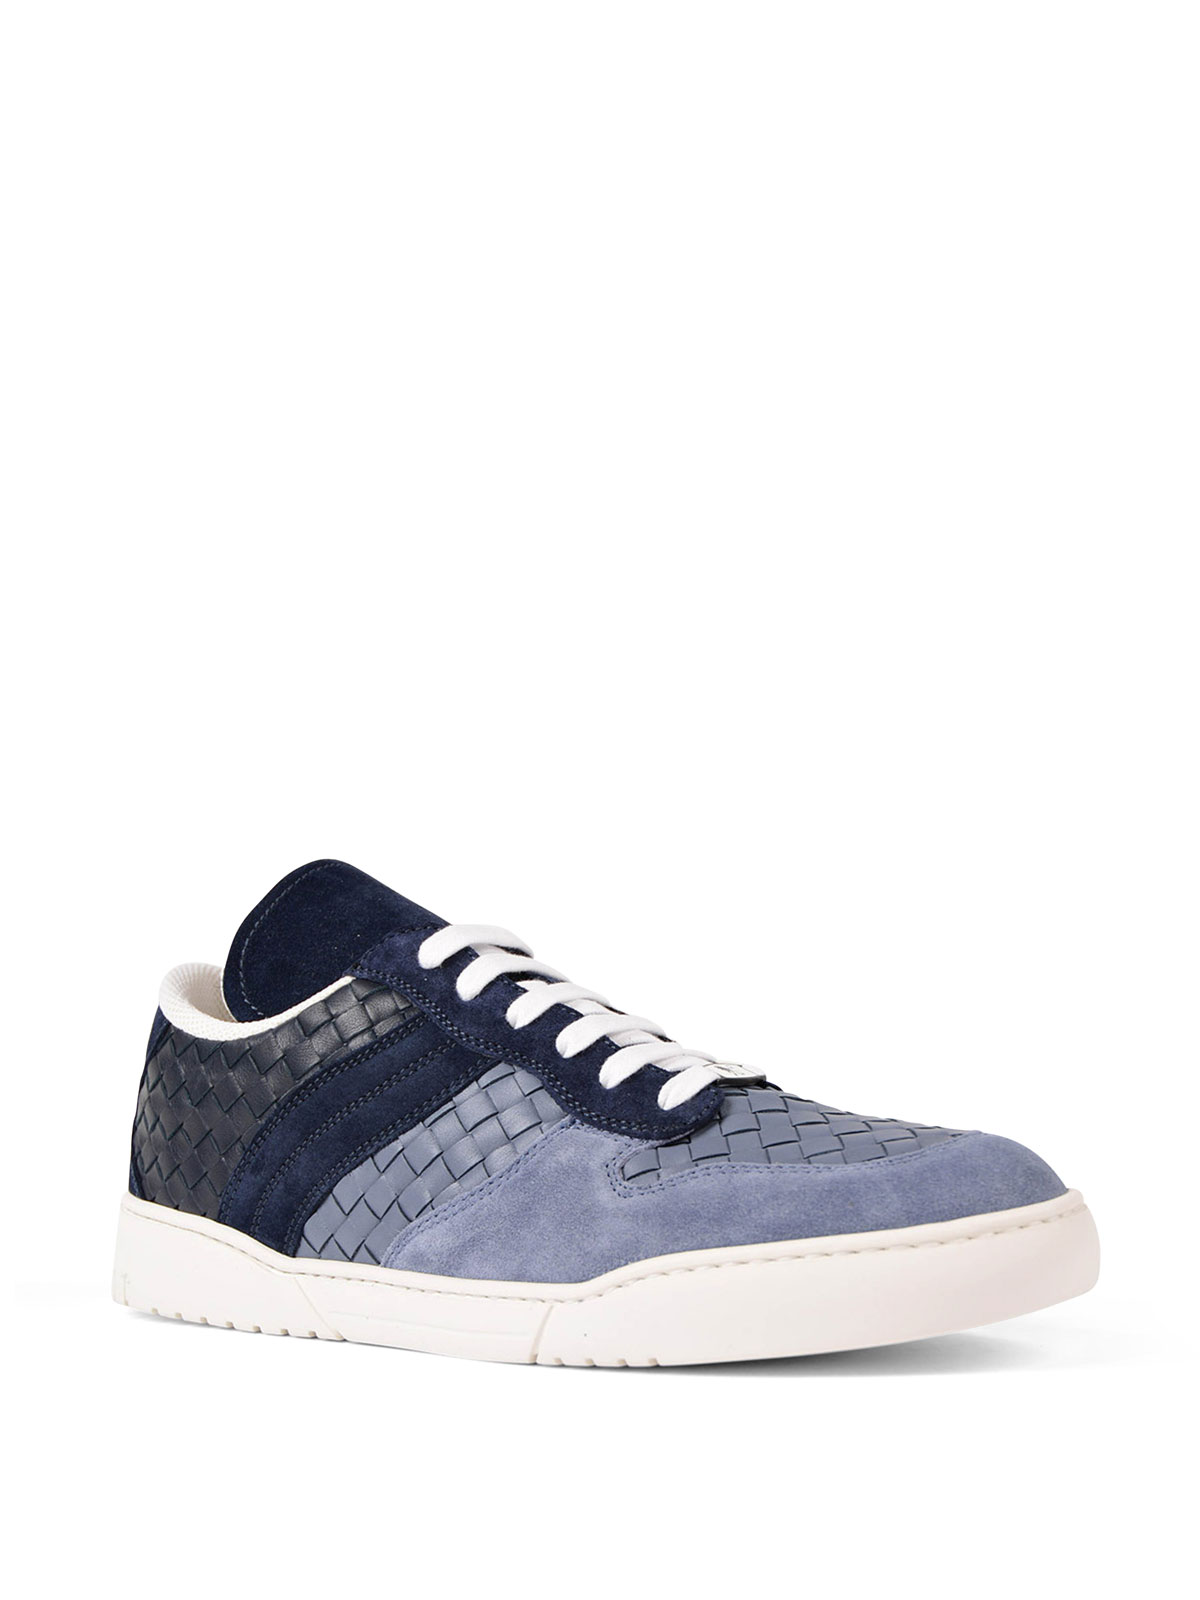 Buy Cheap Choice Outlet Free Shipping Bottega Veneta Intrecciato Leather Sneakers Many Kinds Of For Sale qCKcWU